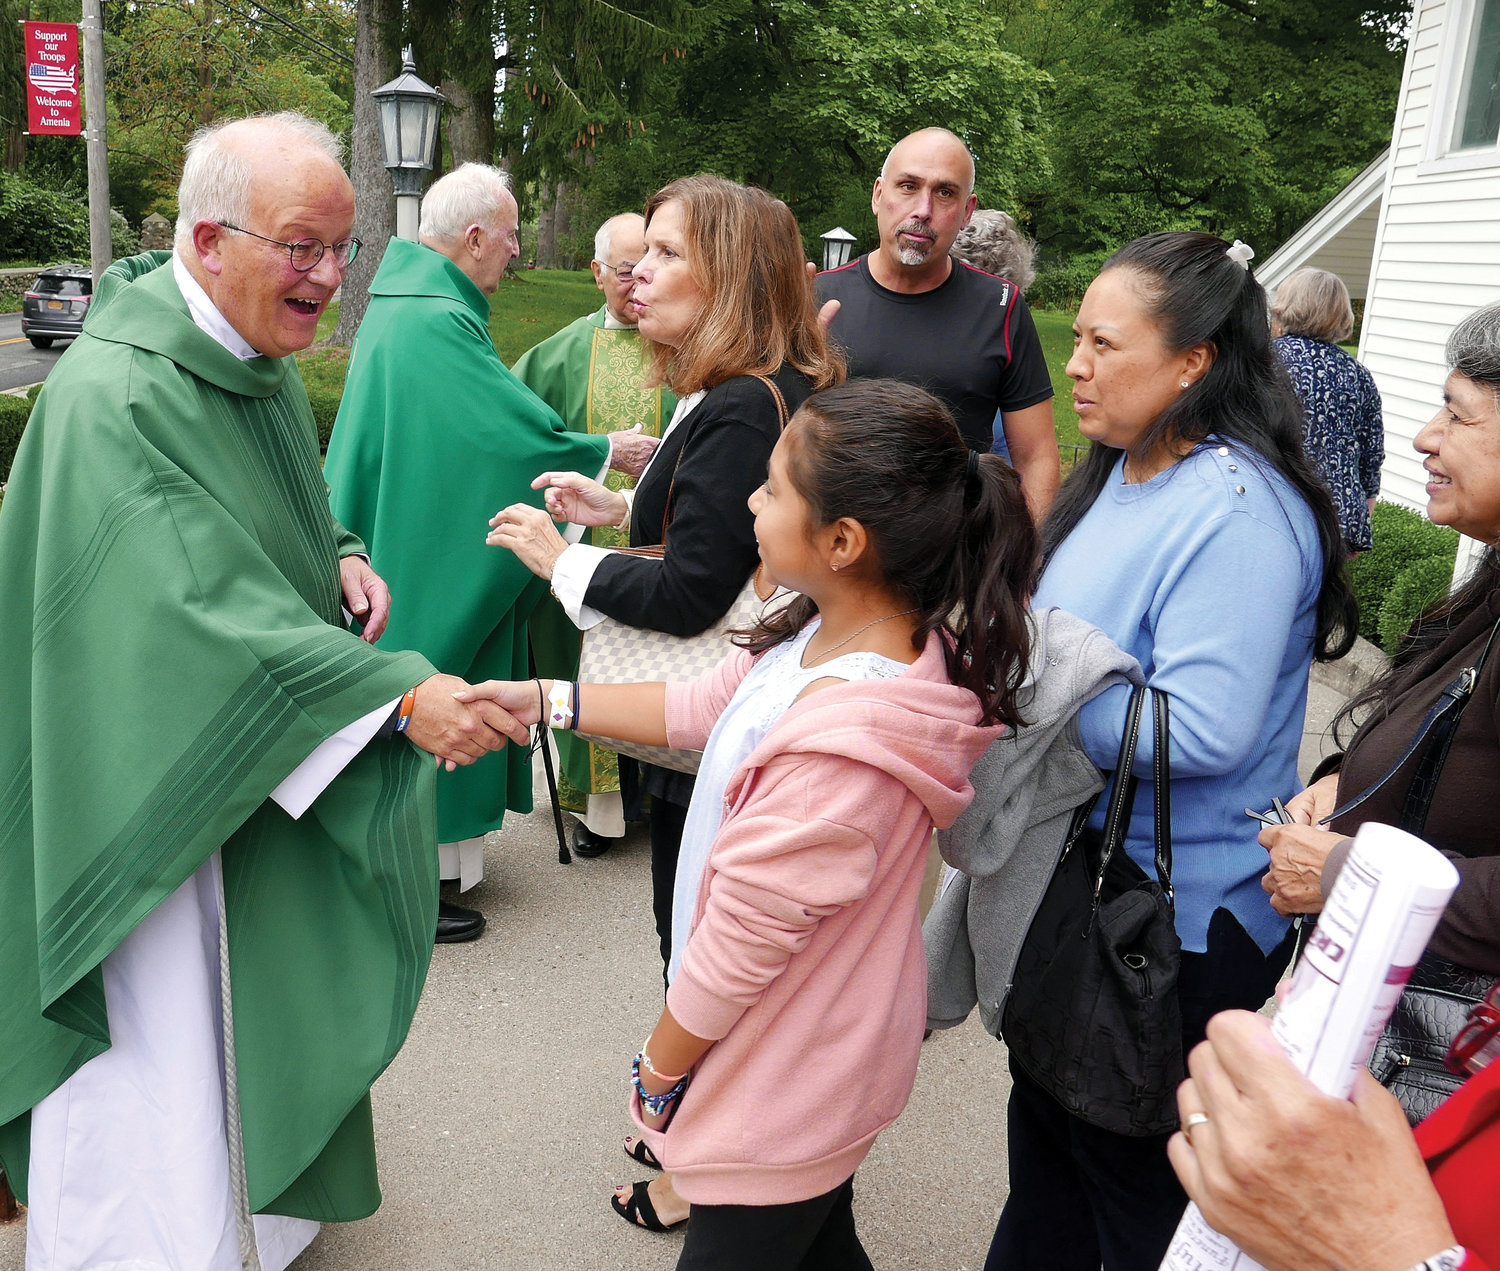 Father Kent Wilson greets parishioners after the Mass.